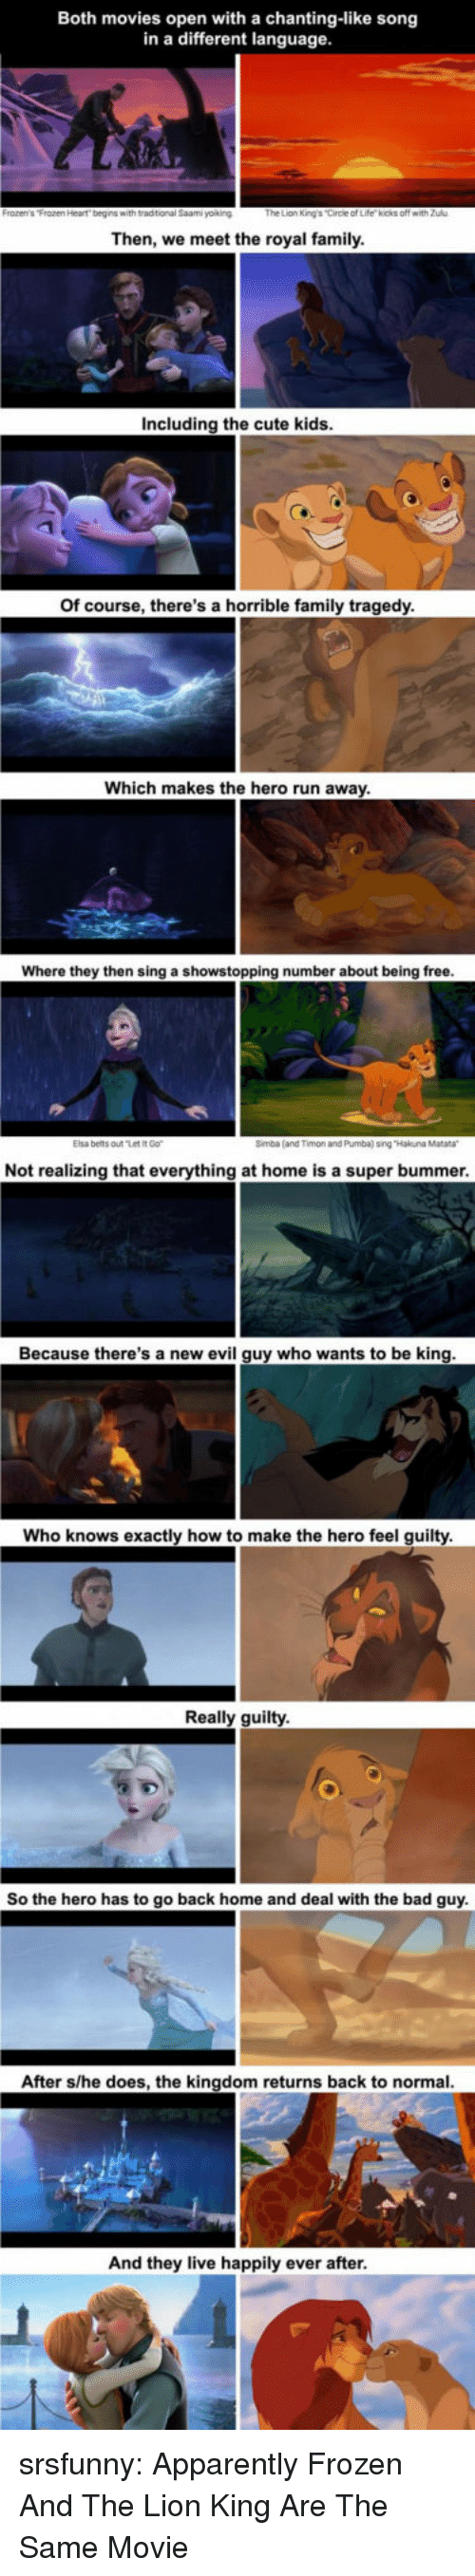 Happily Ever After: Both movies open with a chanting-like song  in a different language  Then, we meet the royal family  Including the cute kids  Of course, there's a horrible family tragedy  Which makes the hero run away  Where they then sing a showstopping number about being free  Elsa belts outt  Simba (and Timon and Pumba) sing Hakuna Matara  Not realizing that everything at home is a super bummer  Because there's a new evil guy who wants to be king  Who knows exactly how to make the hero feel guilty  Really guilty  So the hero has to go back home and deal with the bad guy  After s/he does, the kingdom returns back to normal  And they live happily ever after srsfunny:  Apparently Frozen And The Lion King Are The Same Movie